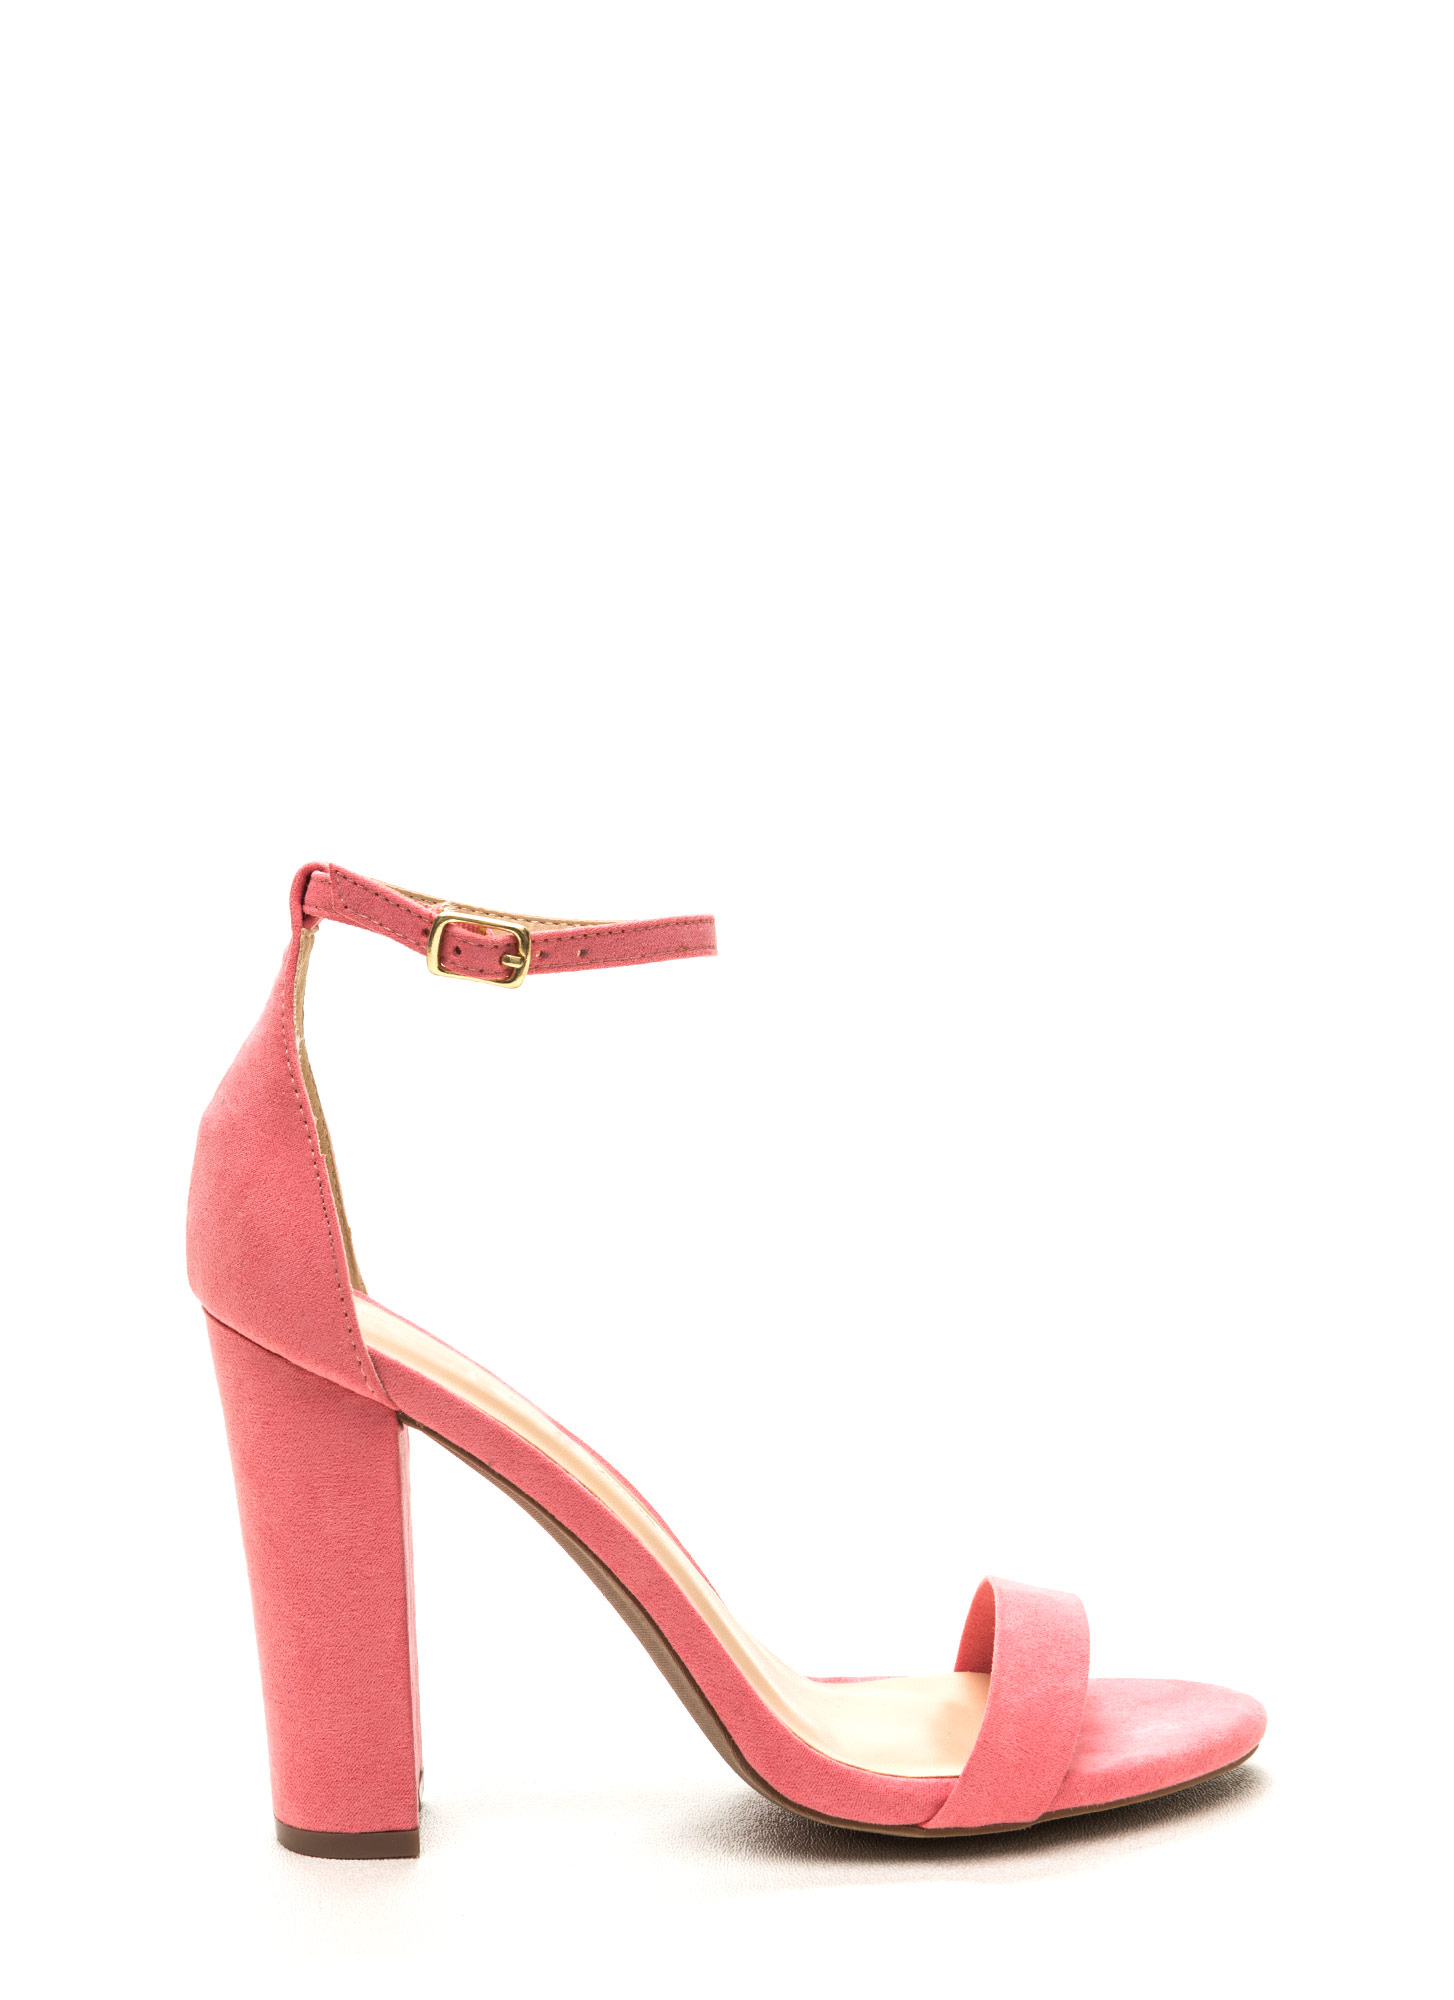 Pure 'N Simple Faux Suede Chunky Heels BLUSH